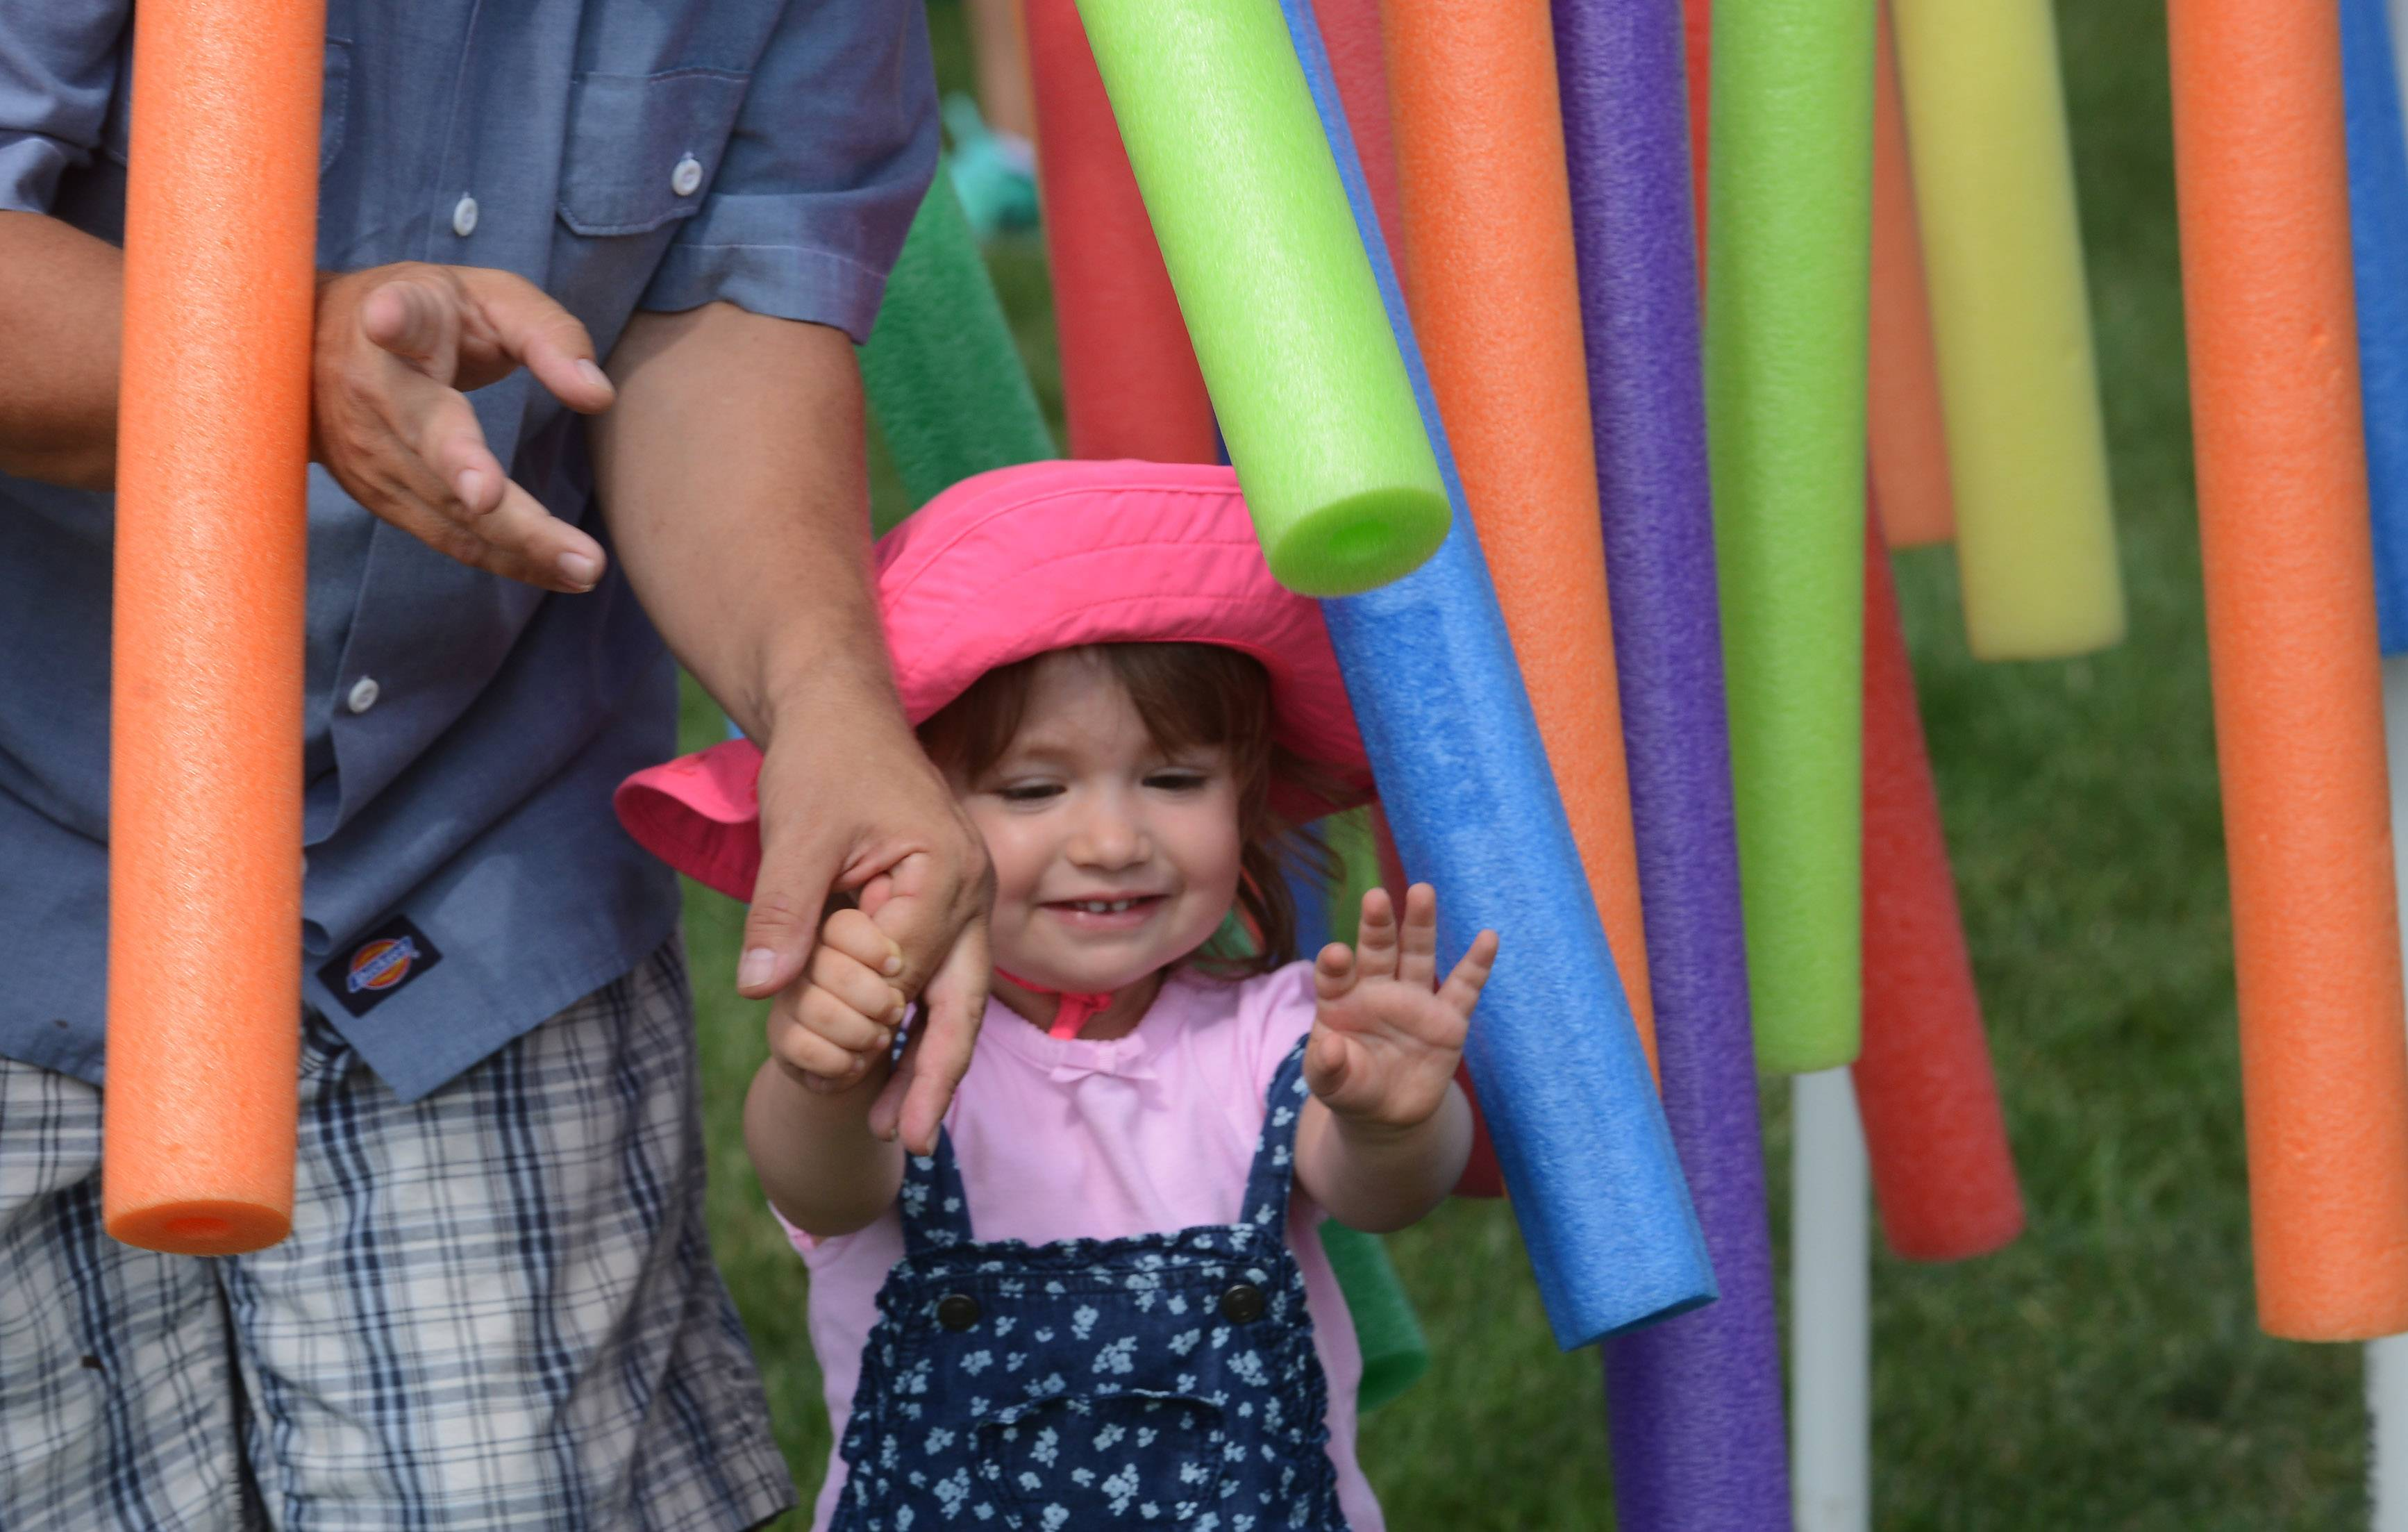 Abbey Fox, 2, of Des Plaines and her dad, Michael, make their way through hanging foam tubes as they have fun at the Des Plaines Fall Fest last year.